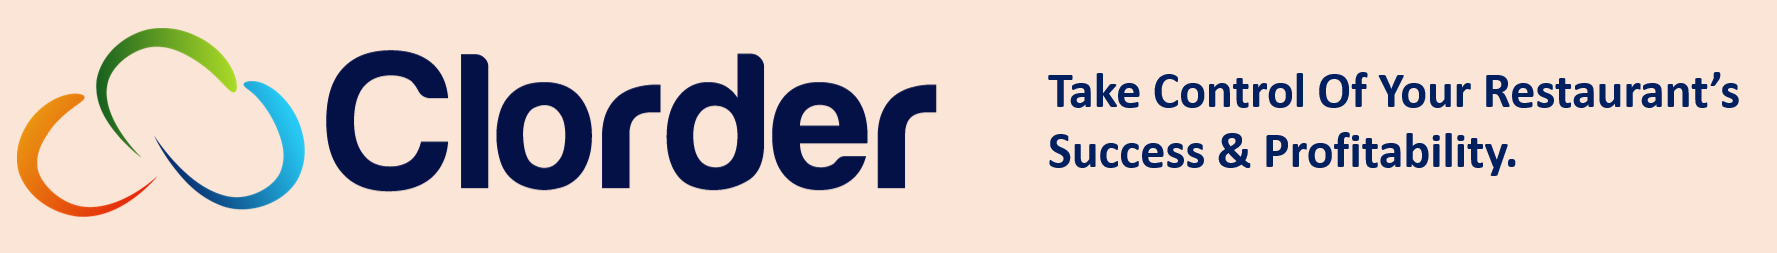 Clorder